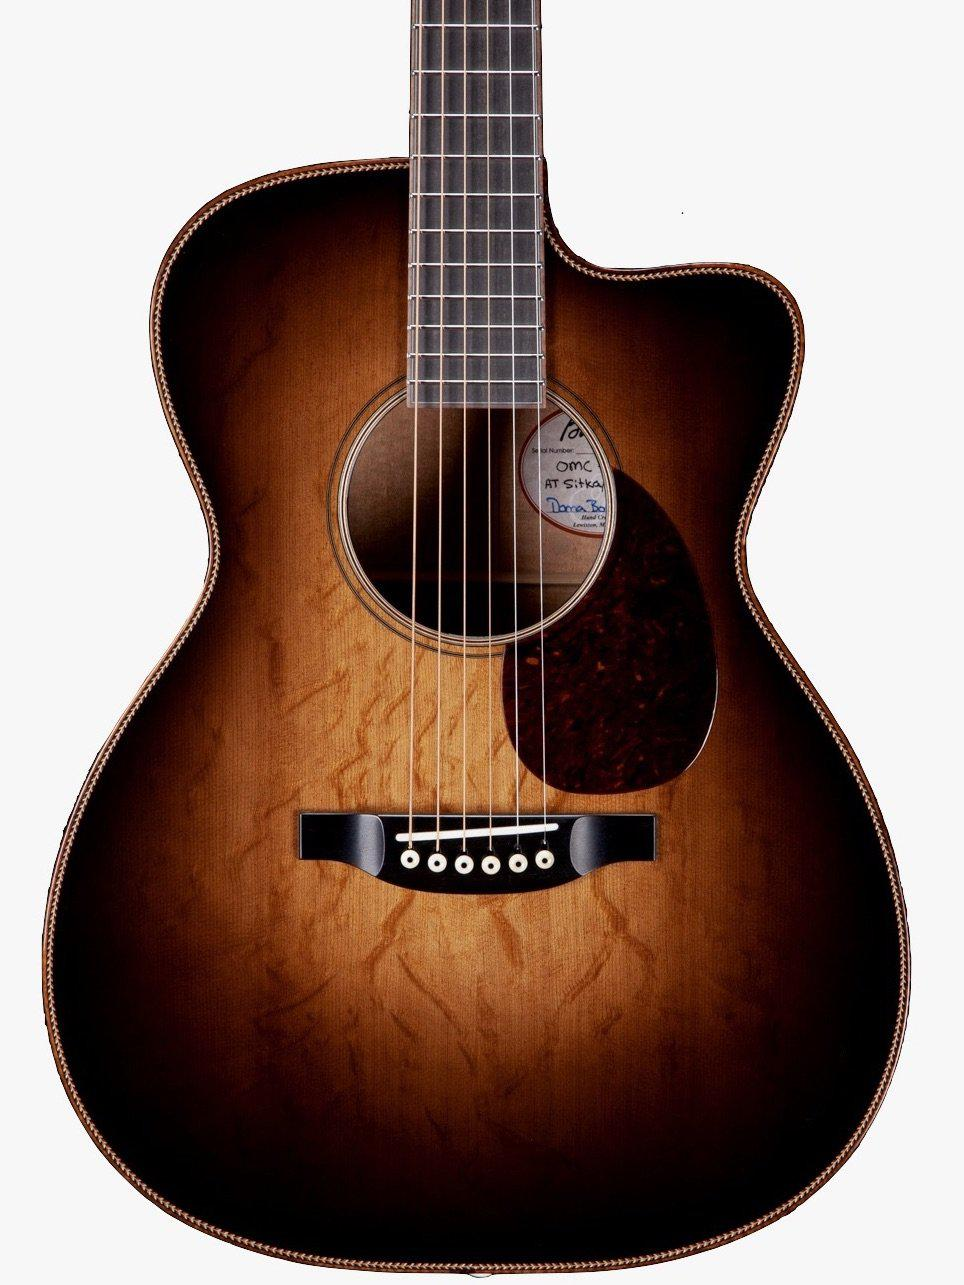 Bourgeois OMC Custom Large Sound Hole Aged Tone Bear Claw over Figured Mahogany #8837 - Bourgeois Guitars - Heartbreaker Guitars